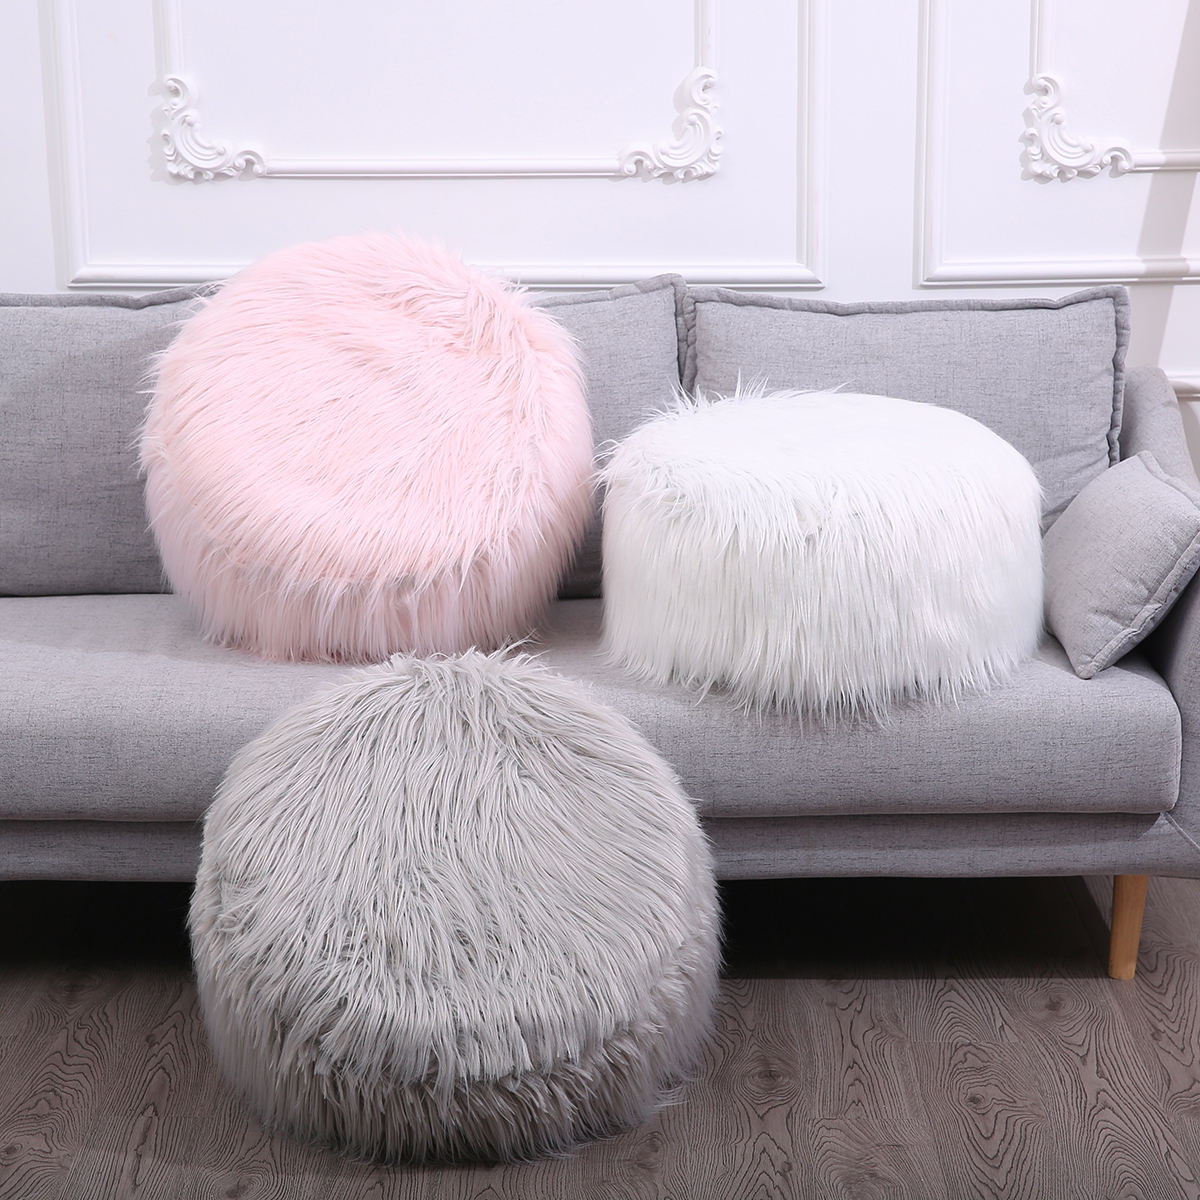 Shaggy Detachable Inflatable Bean Bags Stool Soft Fluffy Futon Faux Fur Portable Footstool Stool Cloth+Inflatable Stool+Pump D20